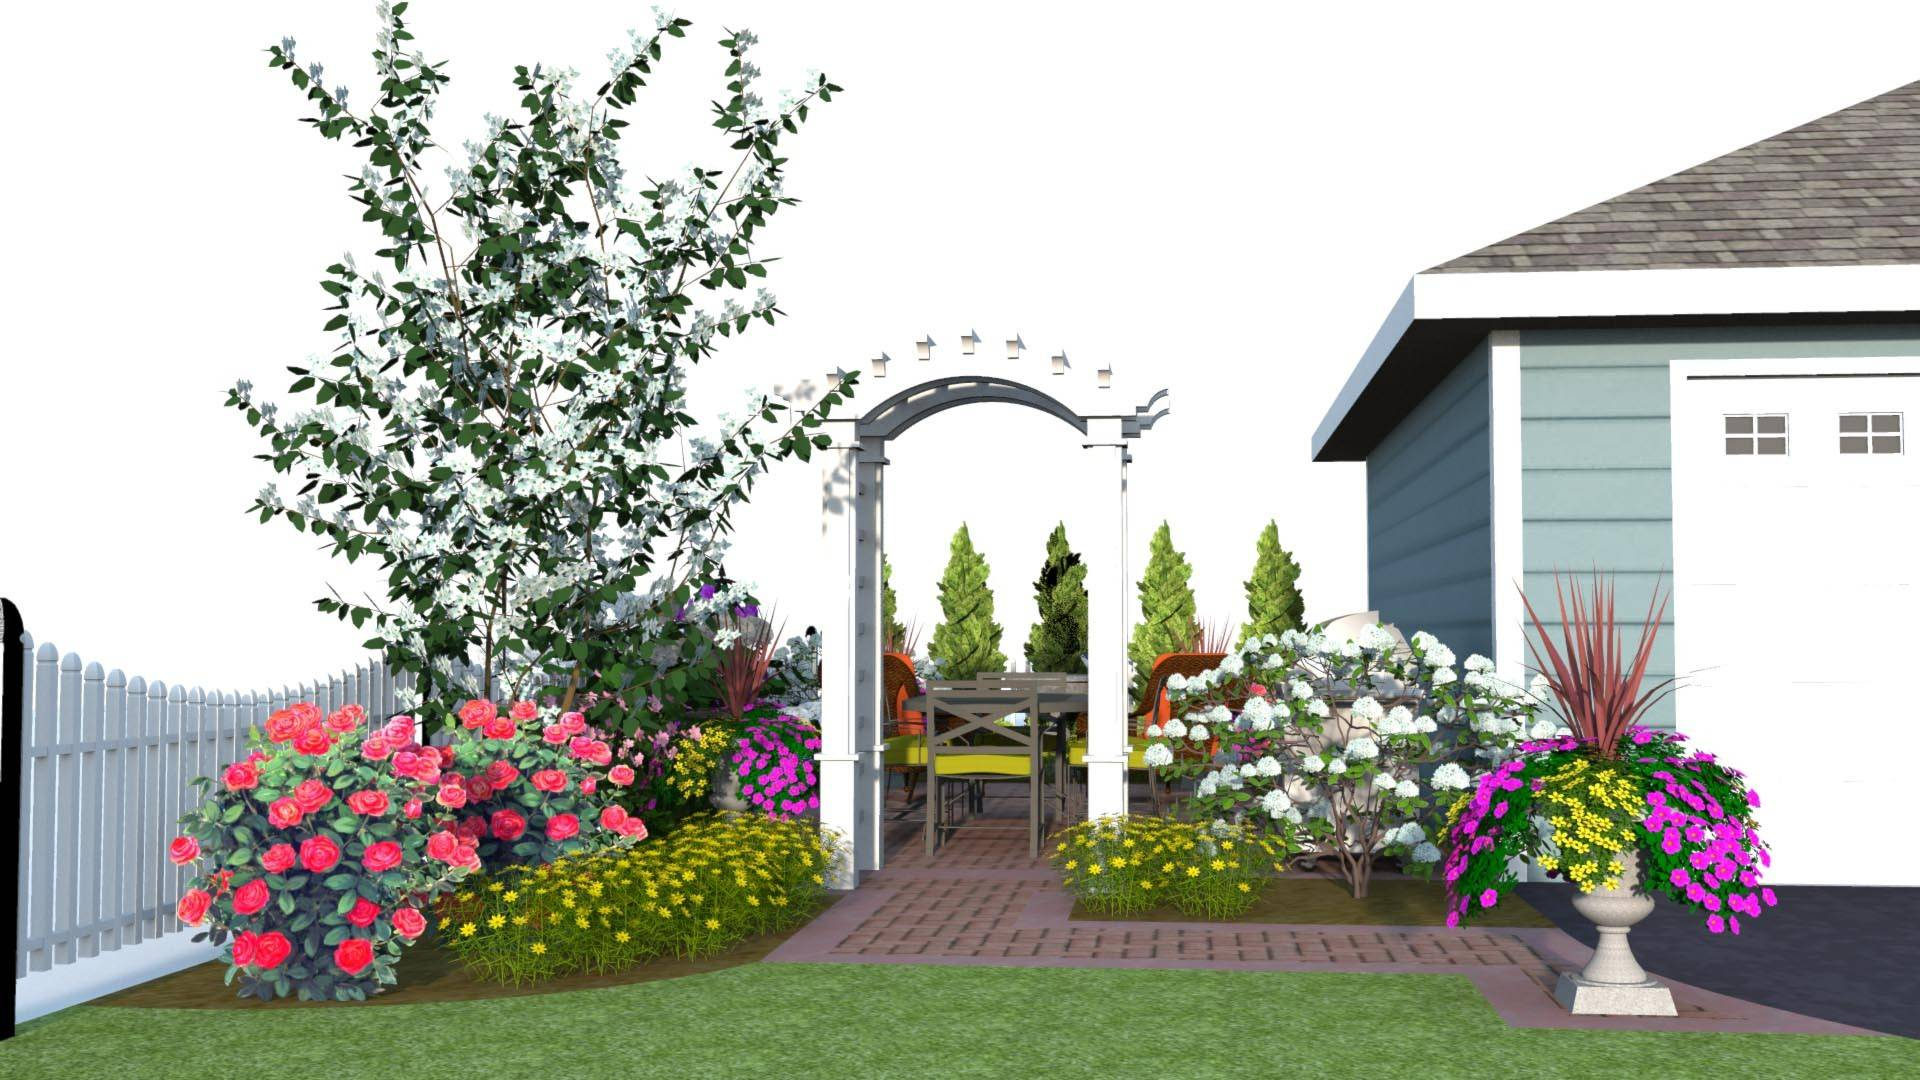 RYCO Landscaping and RYCO Design Group suggest a paver area for grilling and plantings to screen the view, along with garden accents and an arbor for this area formerly shaded by an ash tree..